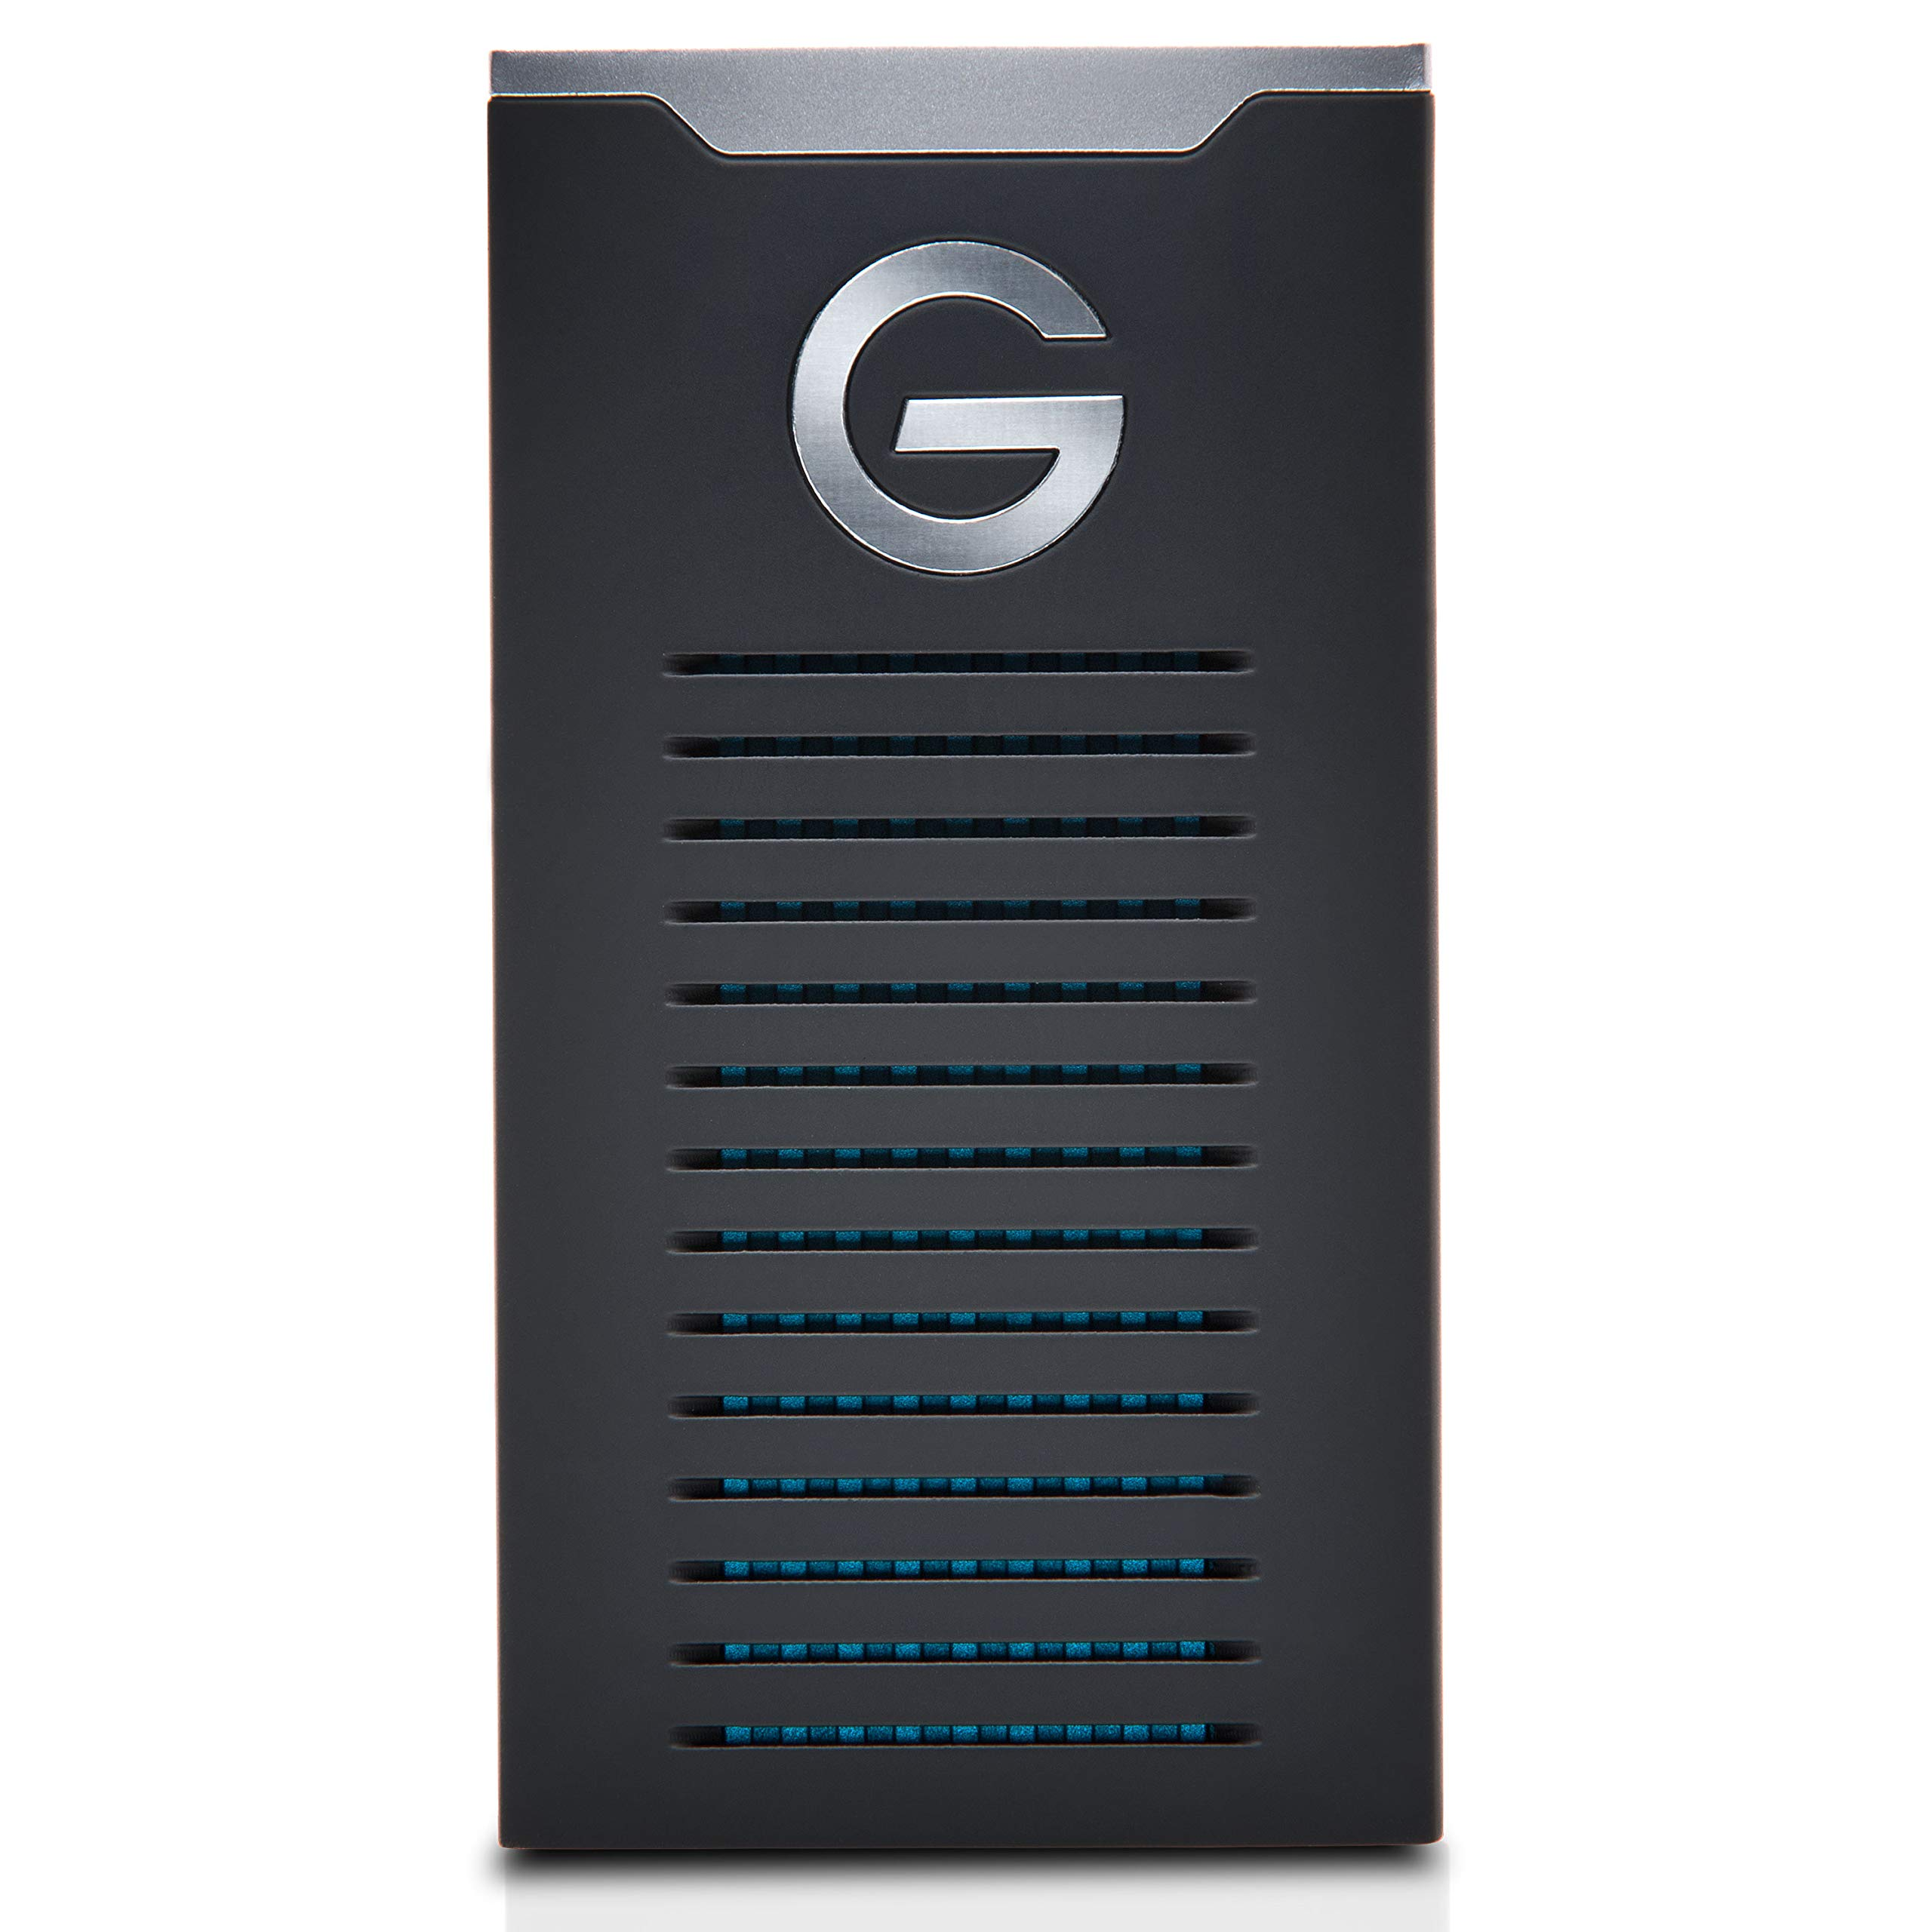 G-Technology 1TB G-DRIVE mobile SSD Durable Portable External Storage - USB-C (USB 3.1), Up to 560 MB/s - 0G06053-1